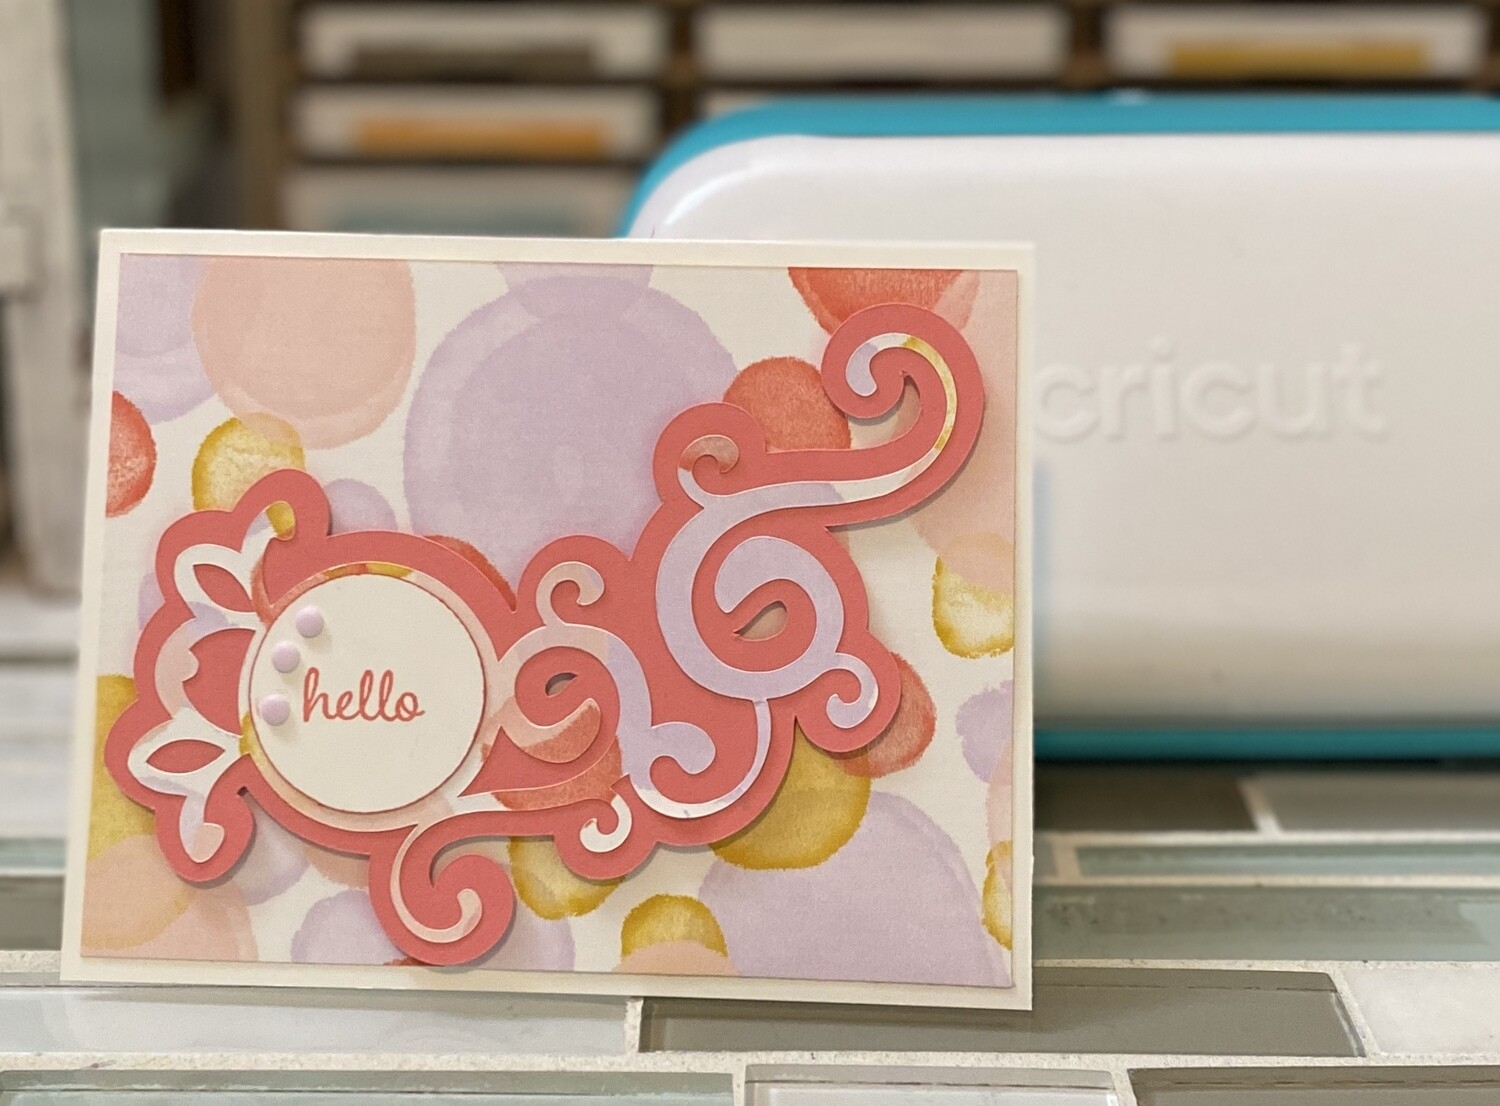 Ready To Stamp Embelly: Flourishes and Circle Simple